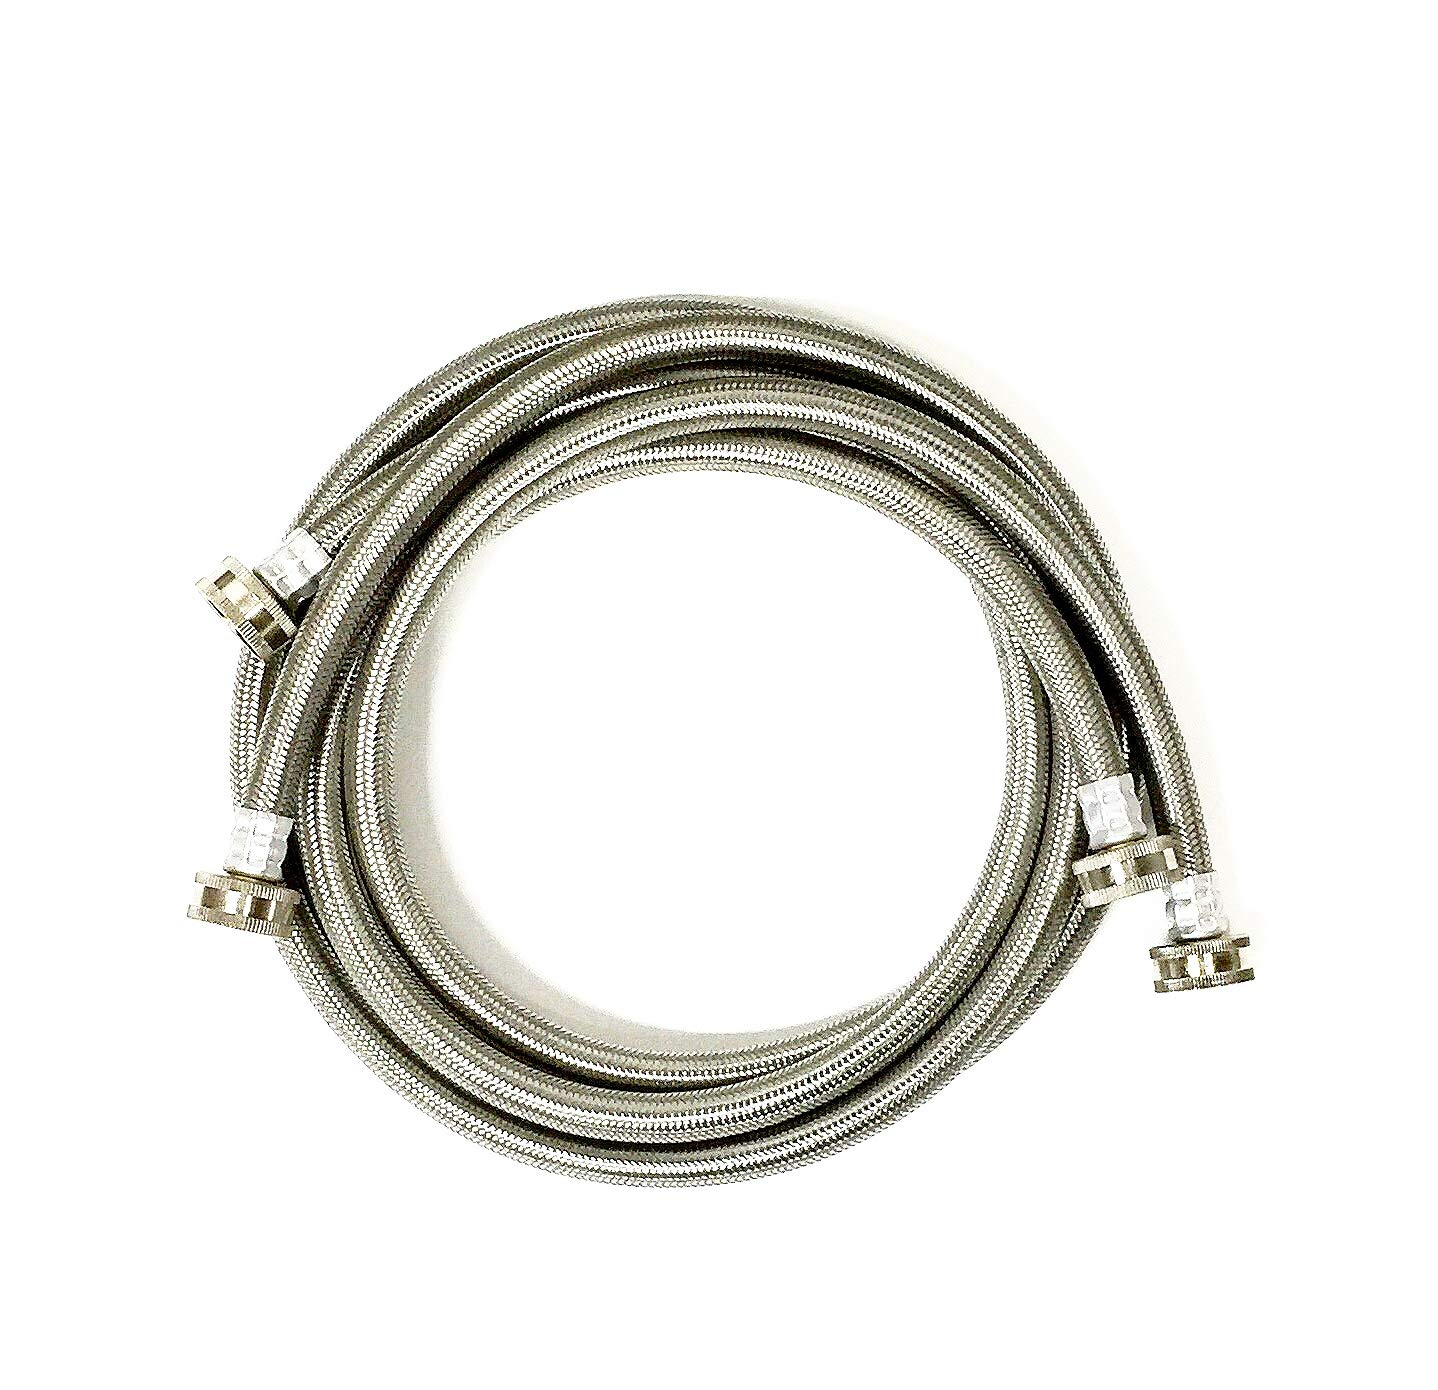 2-Pack Premium Stainless Steel Washing Machine Hoses - 5 FT No-Lead Burst Proof Water Inlet Supply Lines - Universal Connection - 10 Year Warranty